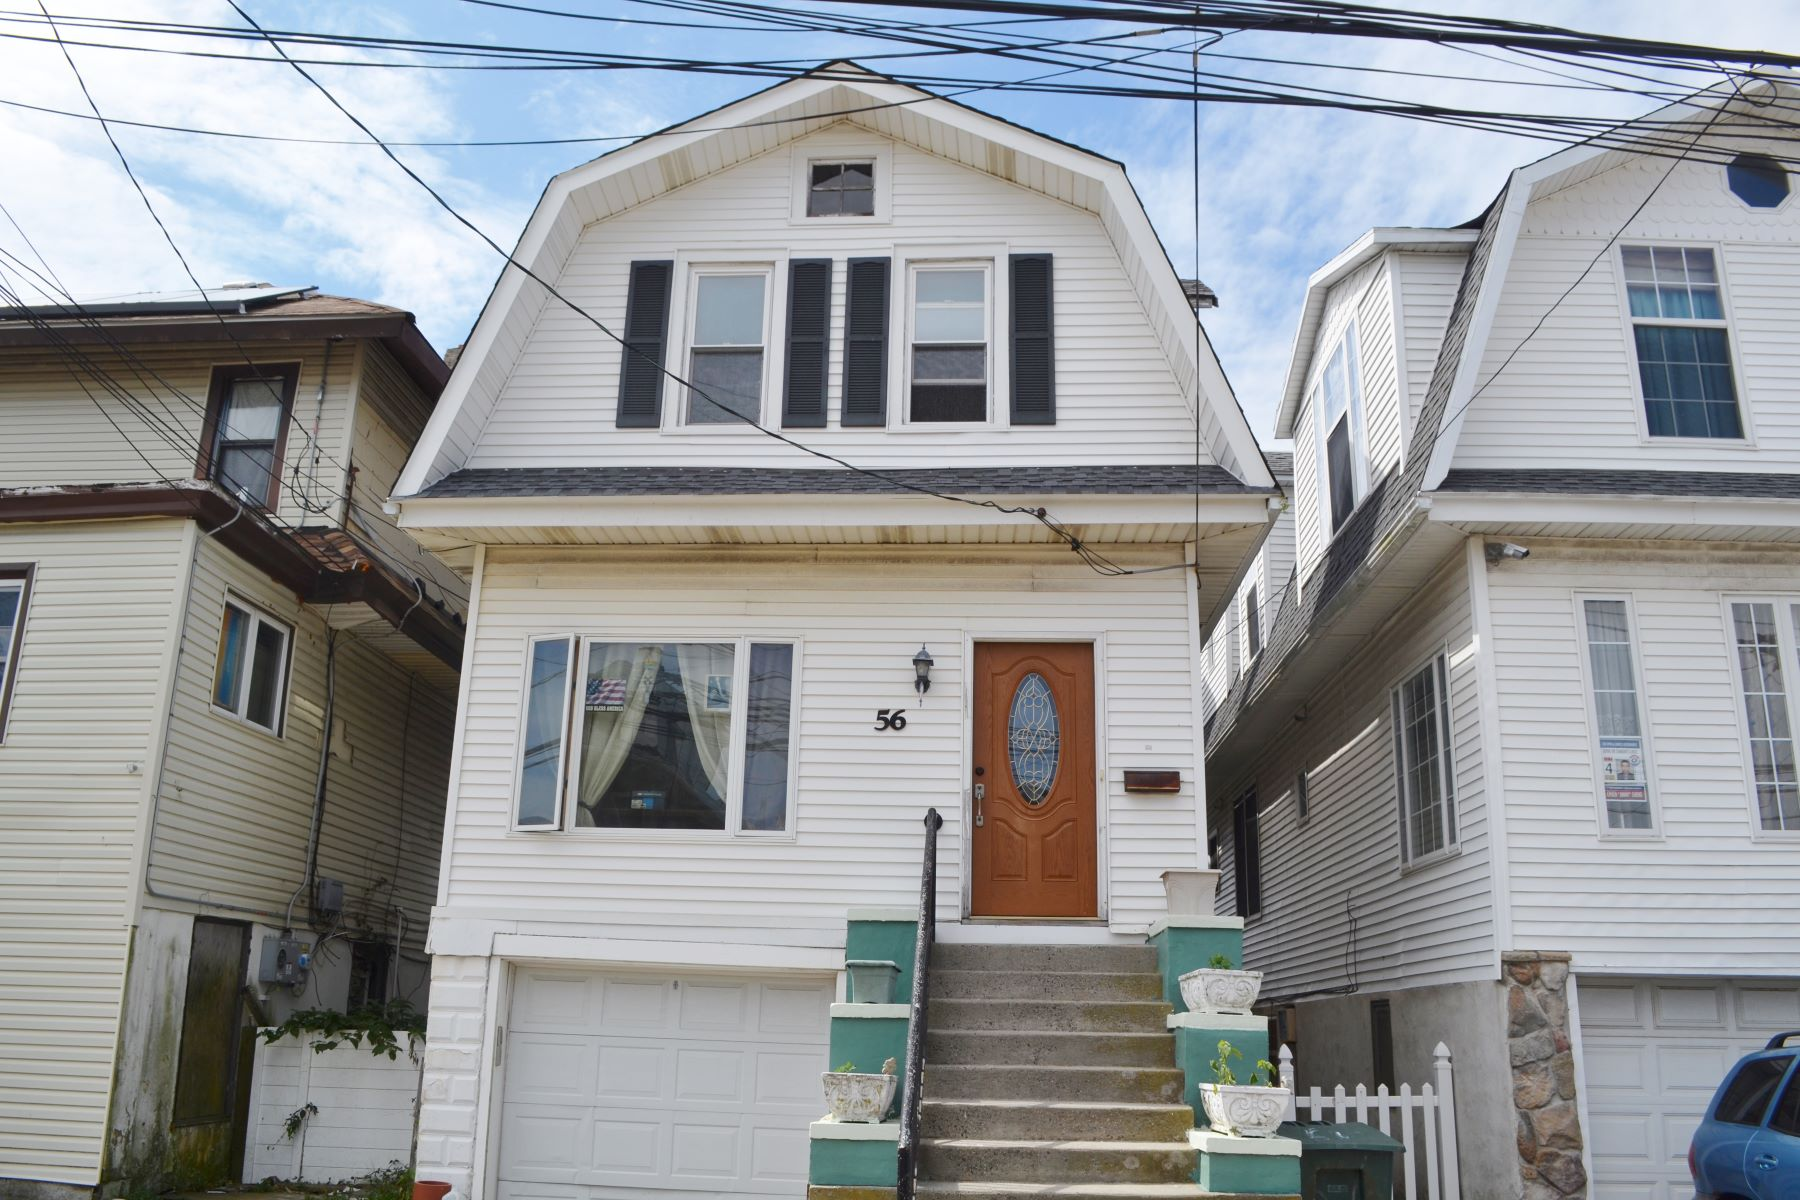 Single Family Homes for Sale at 56 N Trenton Ave Atlantic City, New Jersey 08401 United States